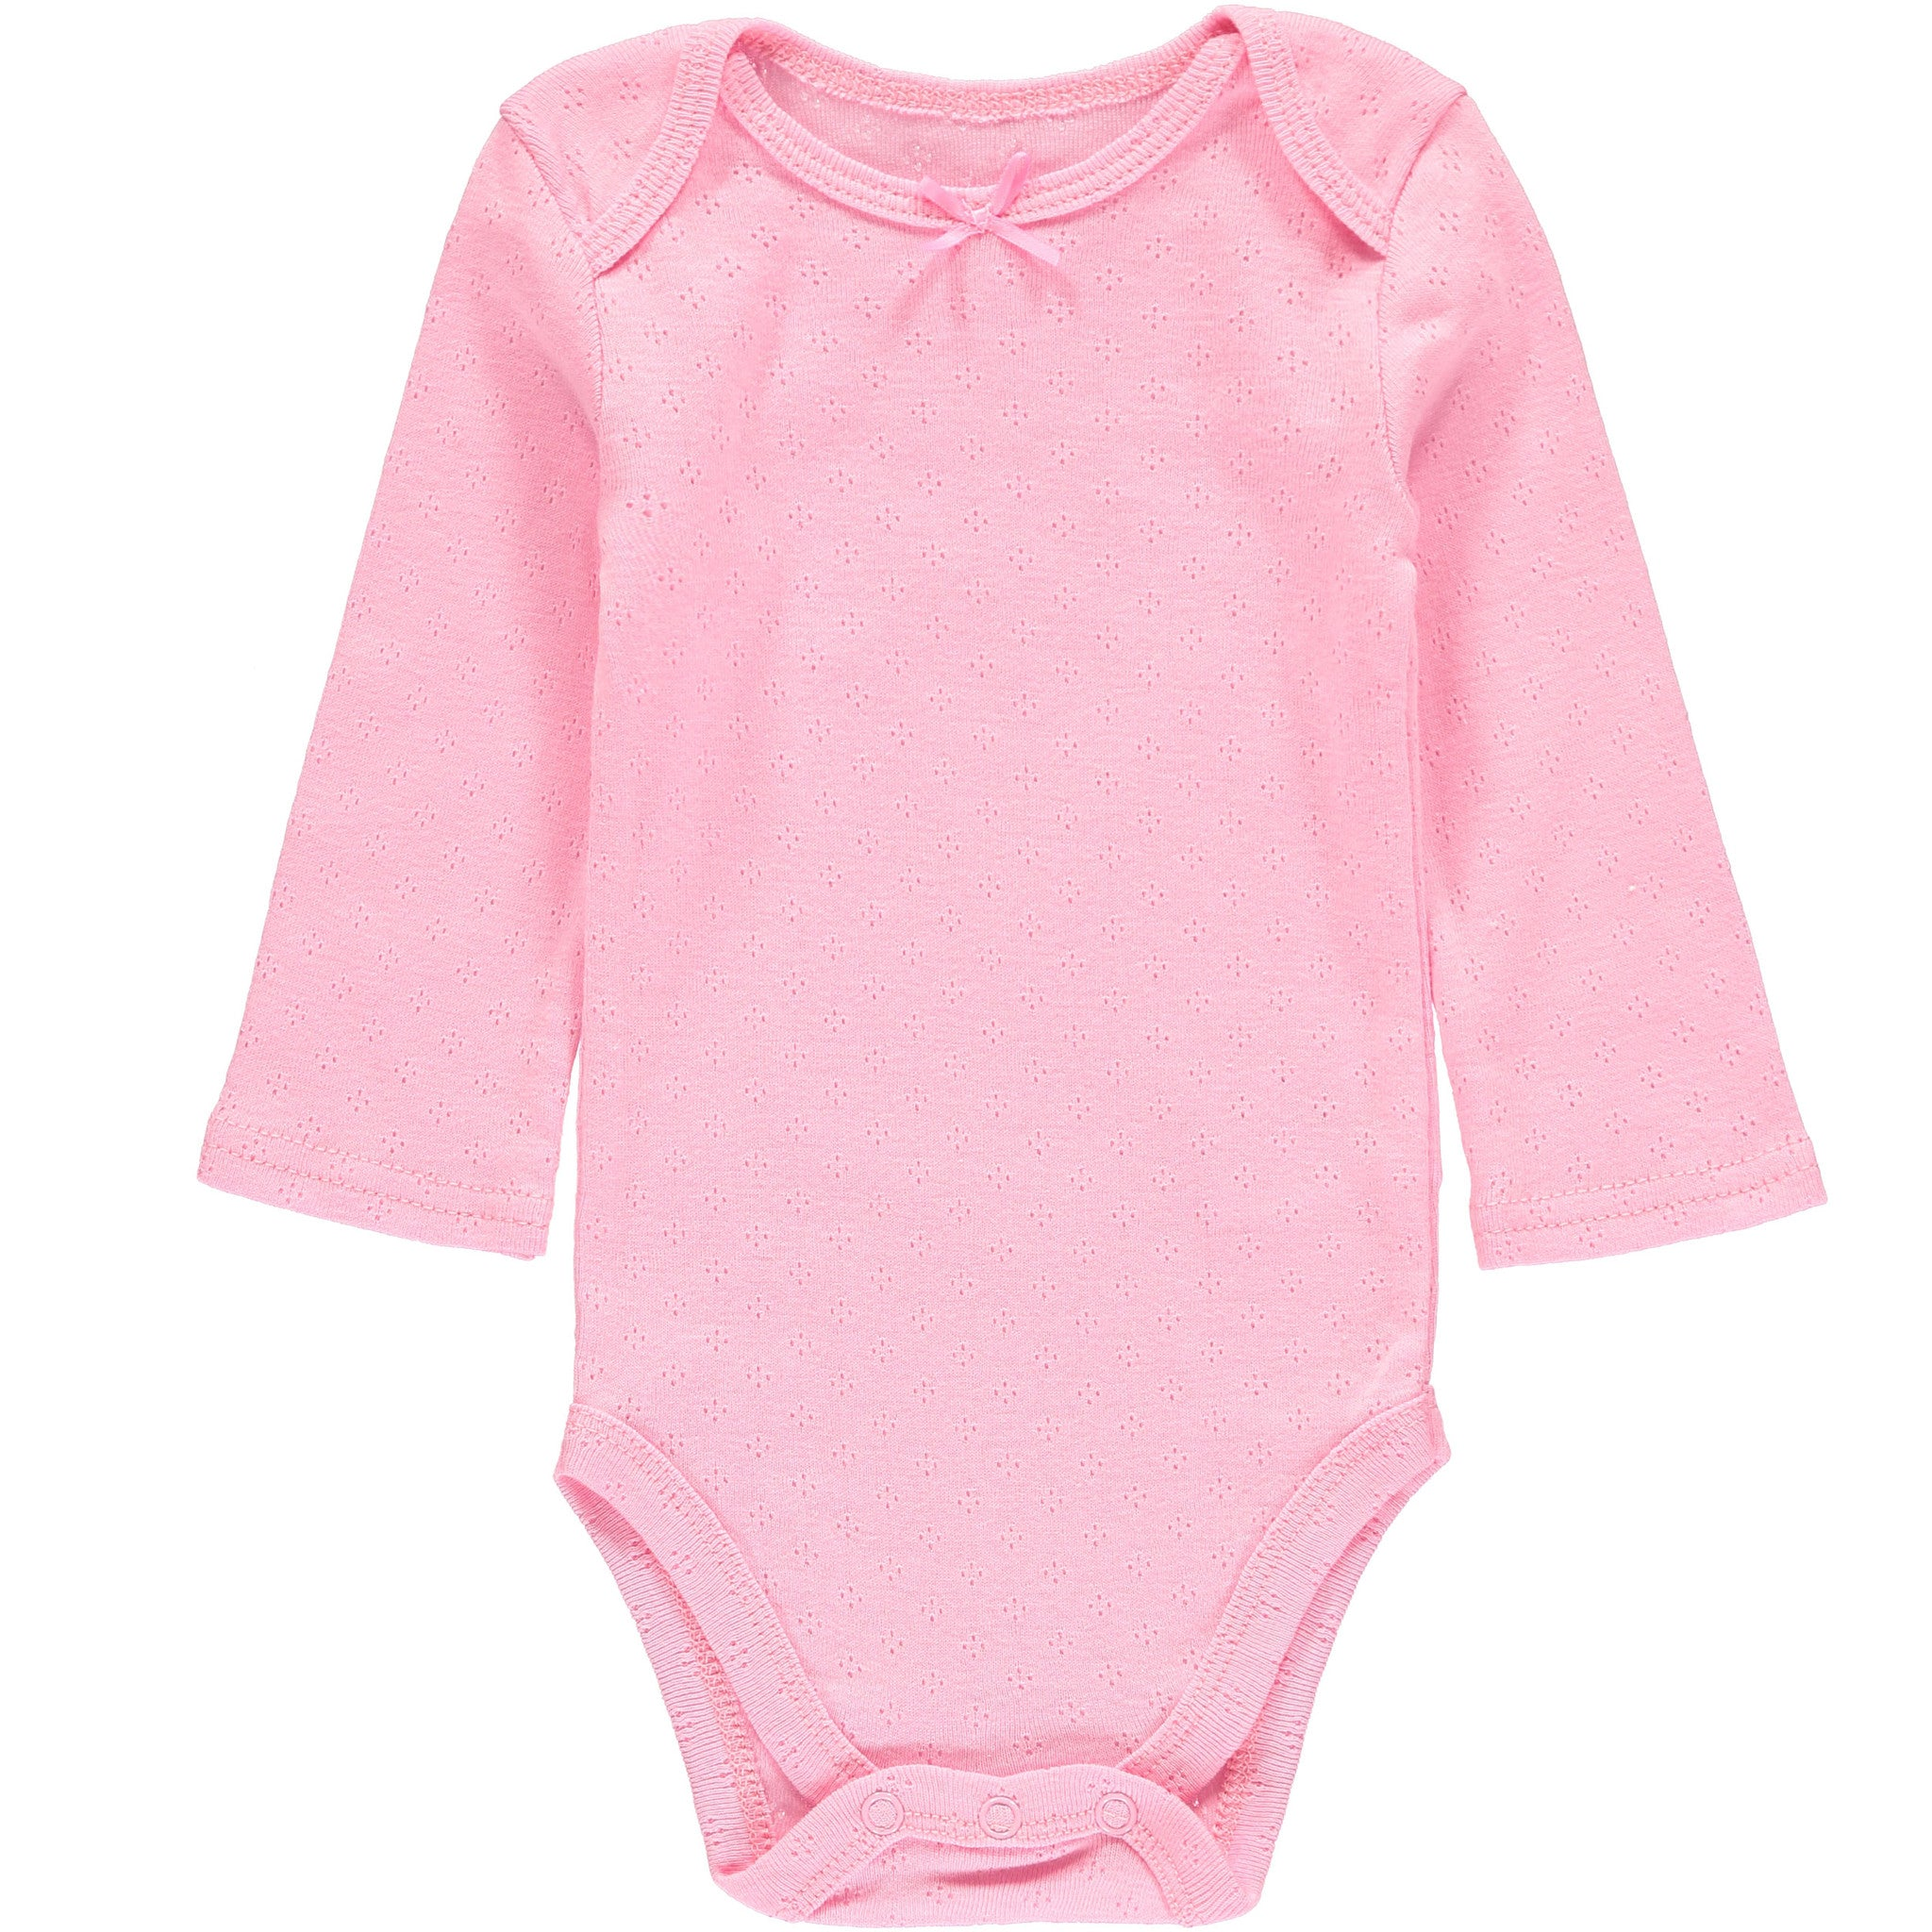 Wan A Beez Fashionable baby basics for all Wanabeez Baby